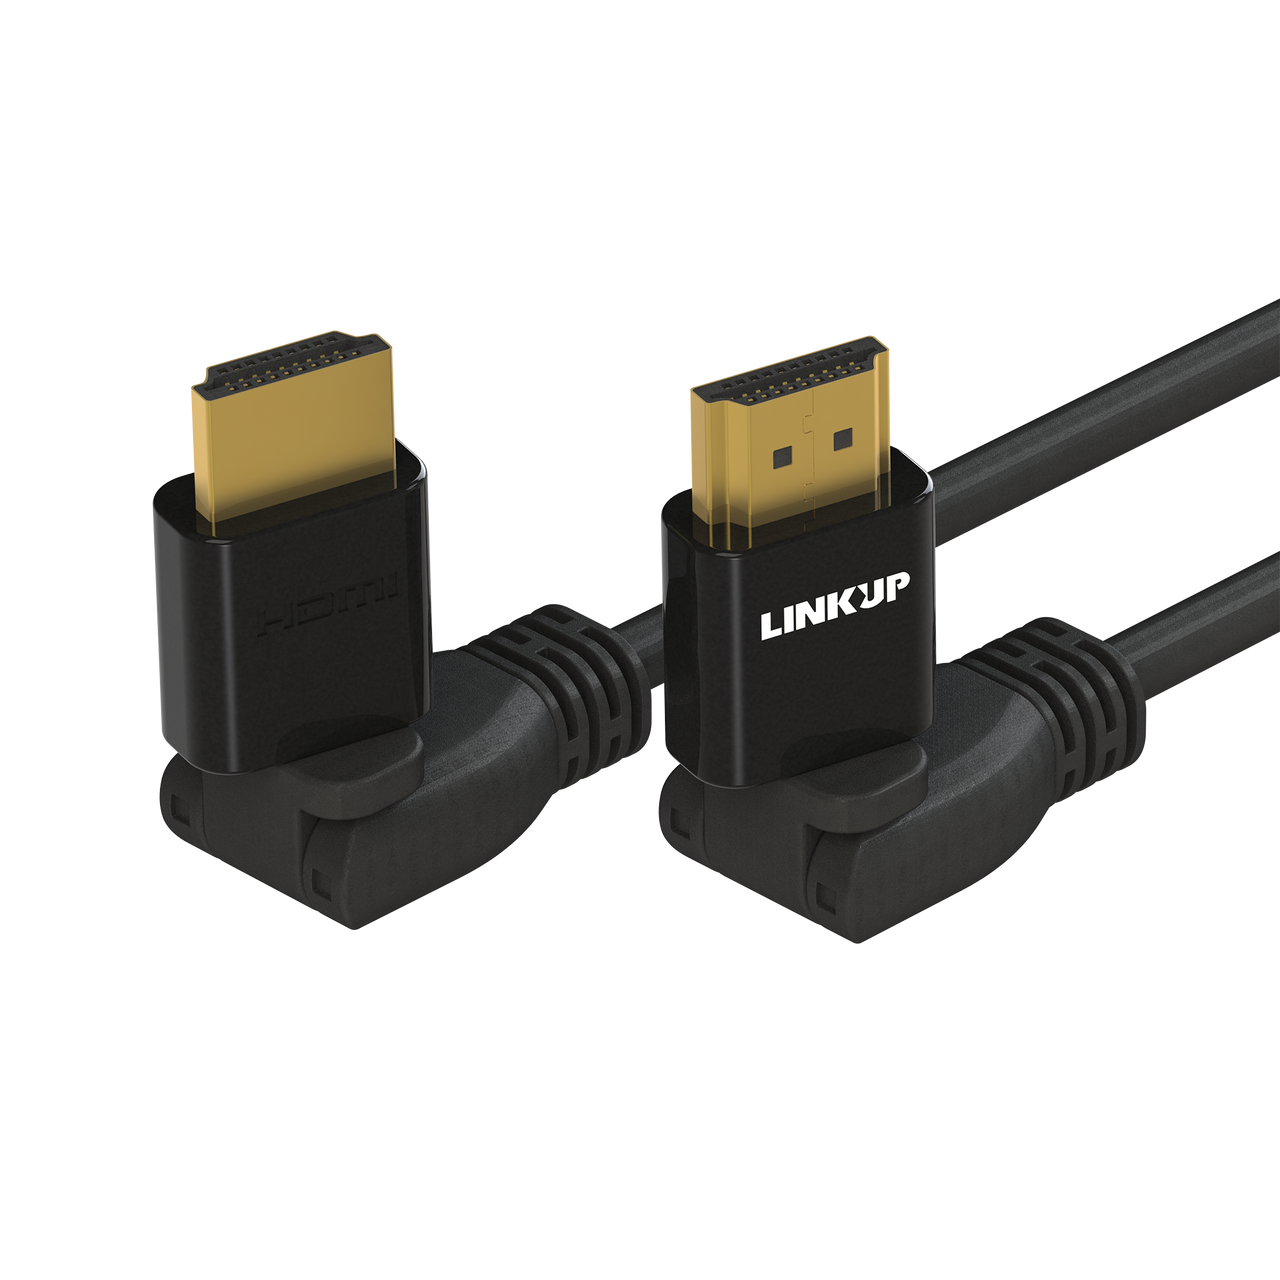 [LINKUP] HDMI 4K Cable Ultra HD 360° Angle Swivel Digital Video Cord -  Heavy Duty 28AWG - Extreme High Speed 18GB/s | 4096 x 2160 | Compatible  with